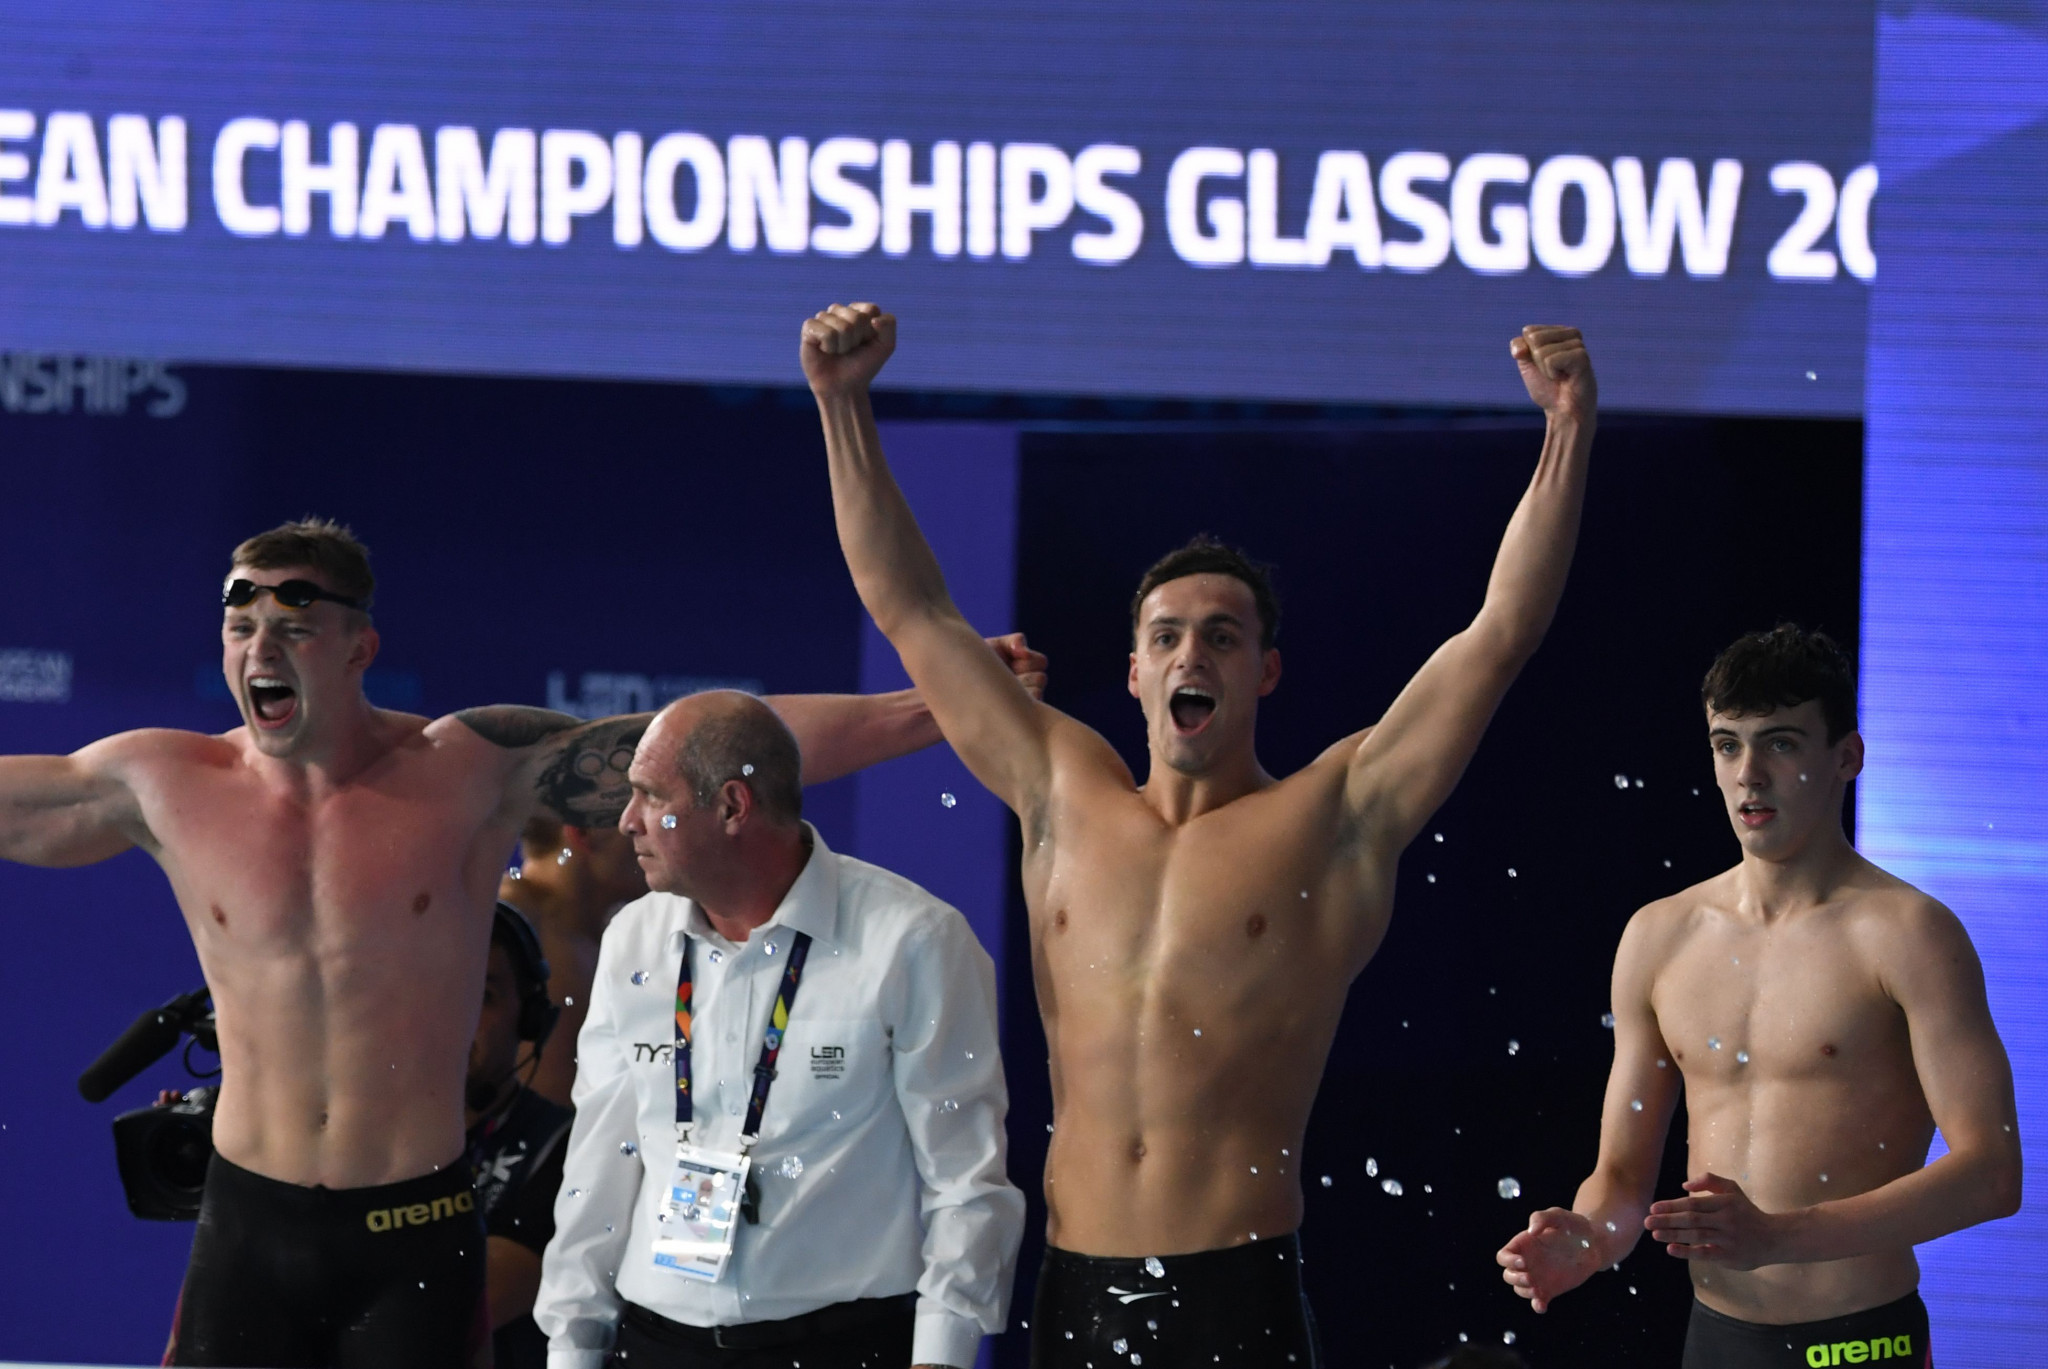 Aquatics featured in Glasgow in 2018 but has not been confirmed for 2022 ©Getty Images